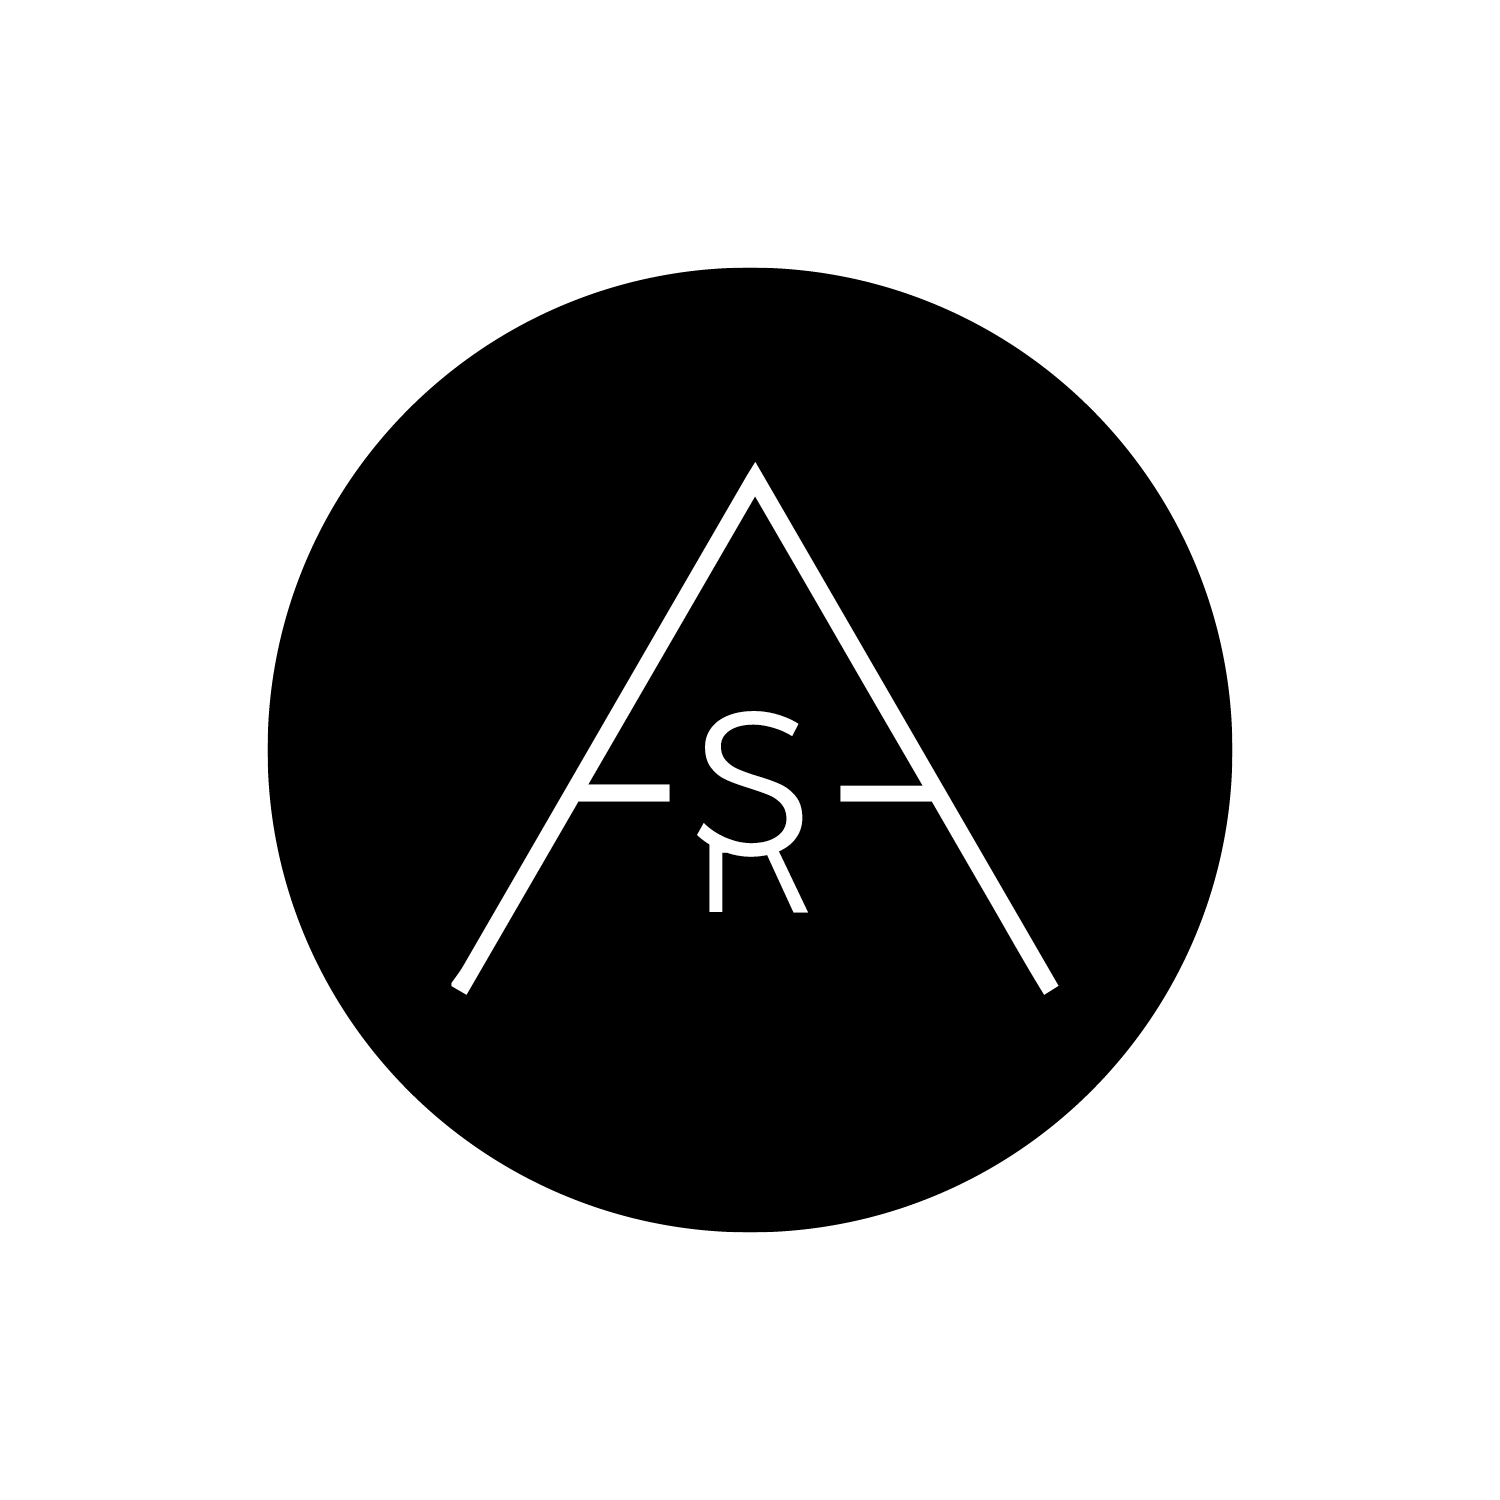 ASR Interior Design Studio